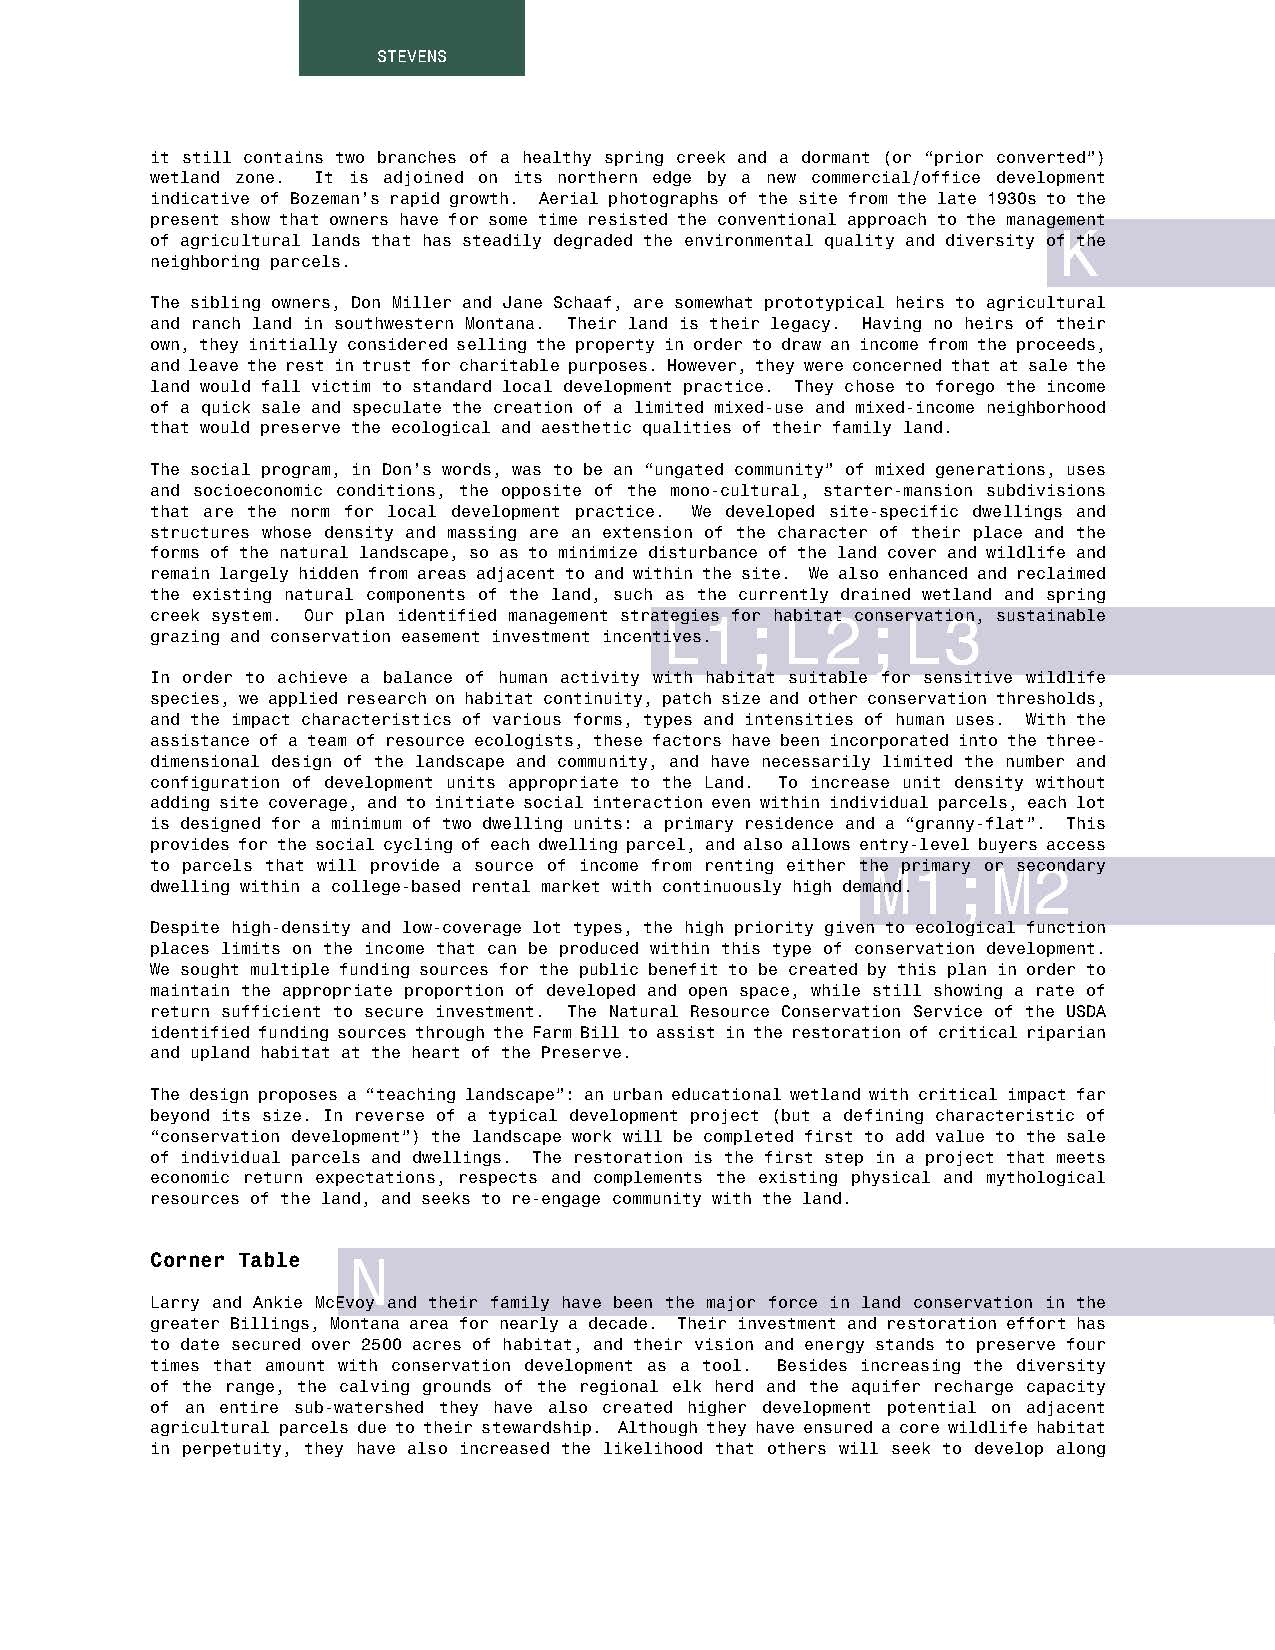 UT New West Land Co Article_Page_17.jpg